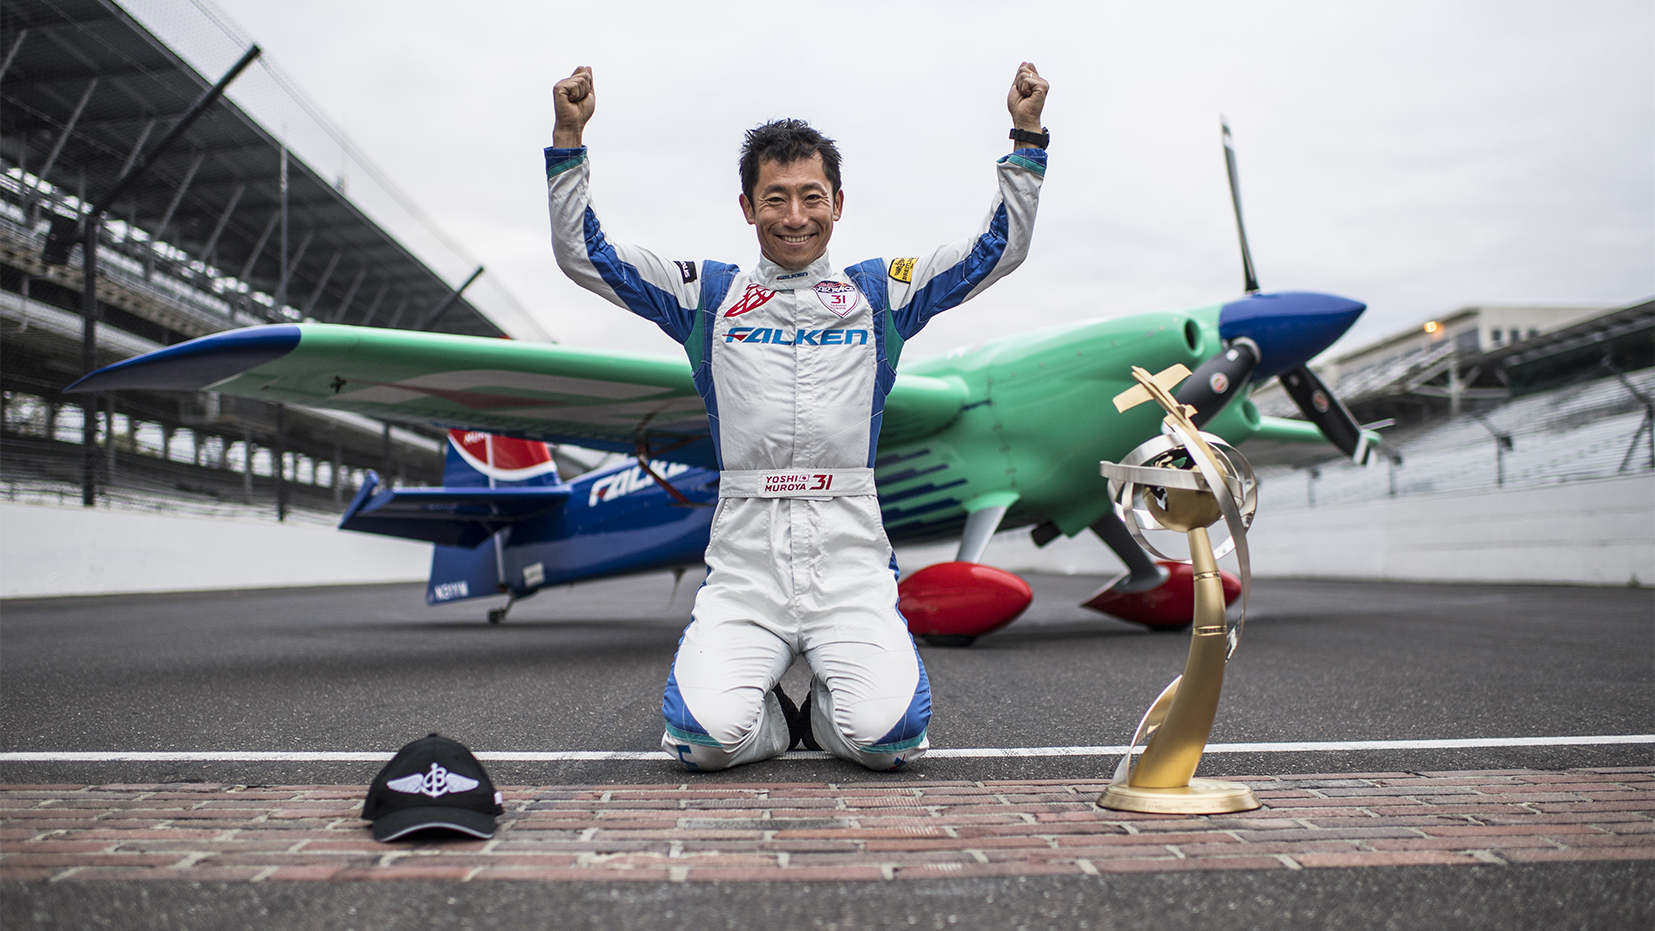 Yoshihide Muroya of Japan poses for a photograph after he won at the eighth round of the Red Bull Air Race World Championship at Indianapolis Motor Speedway. Photo by Joerg Mitter / Red Bull Content Pool.